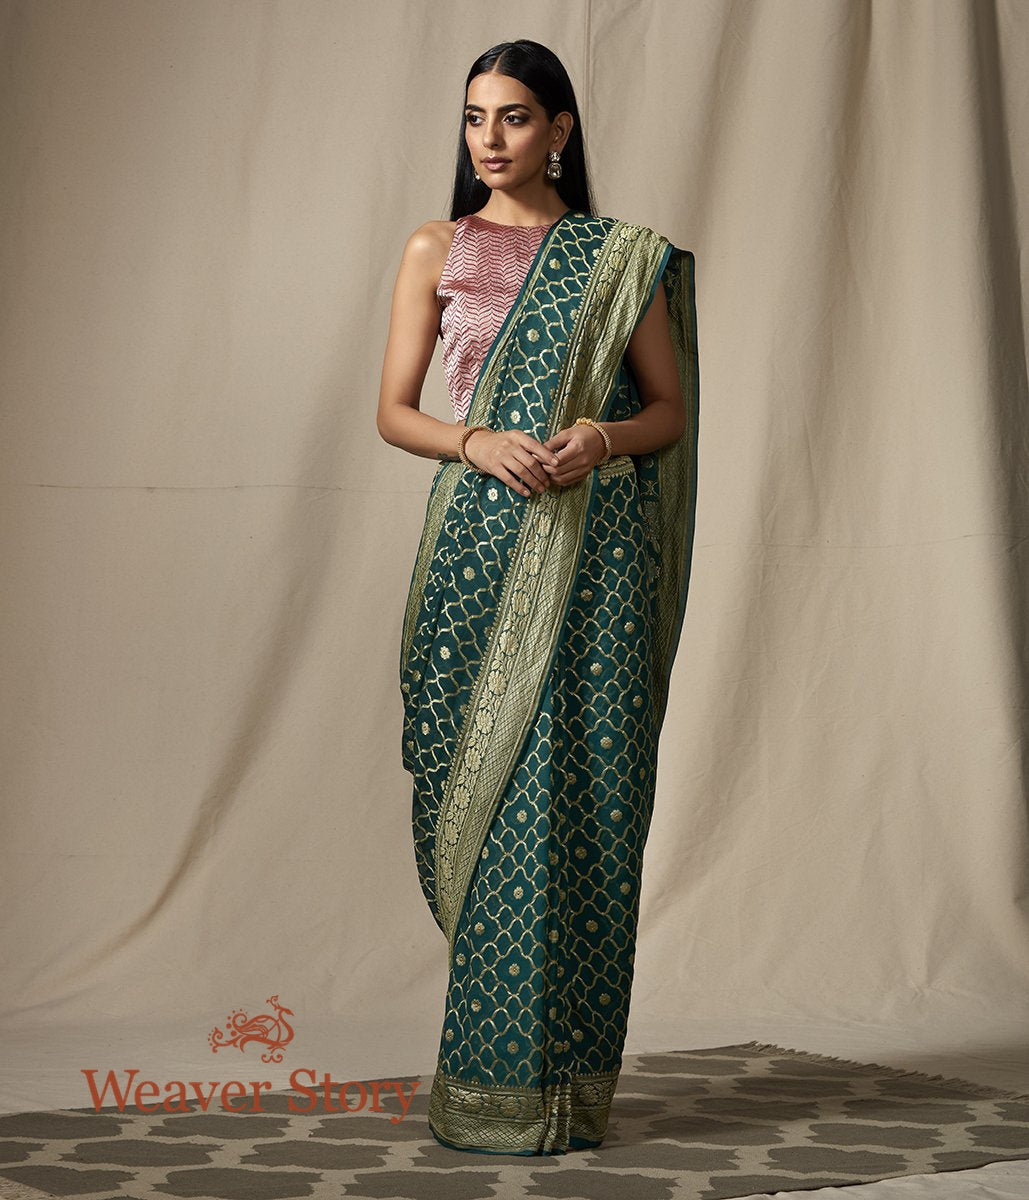 Handwoven Banarasi Georgette Saree in Green with Gold Zari Jaal